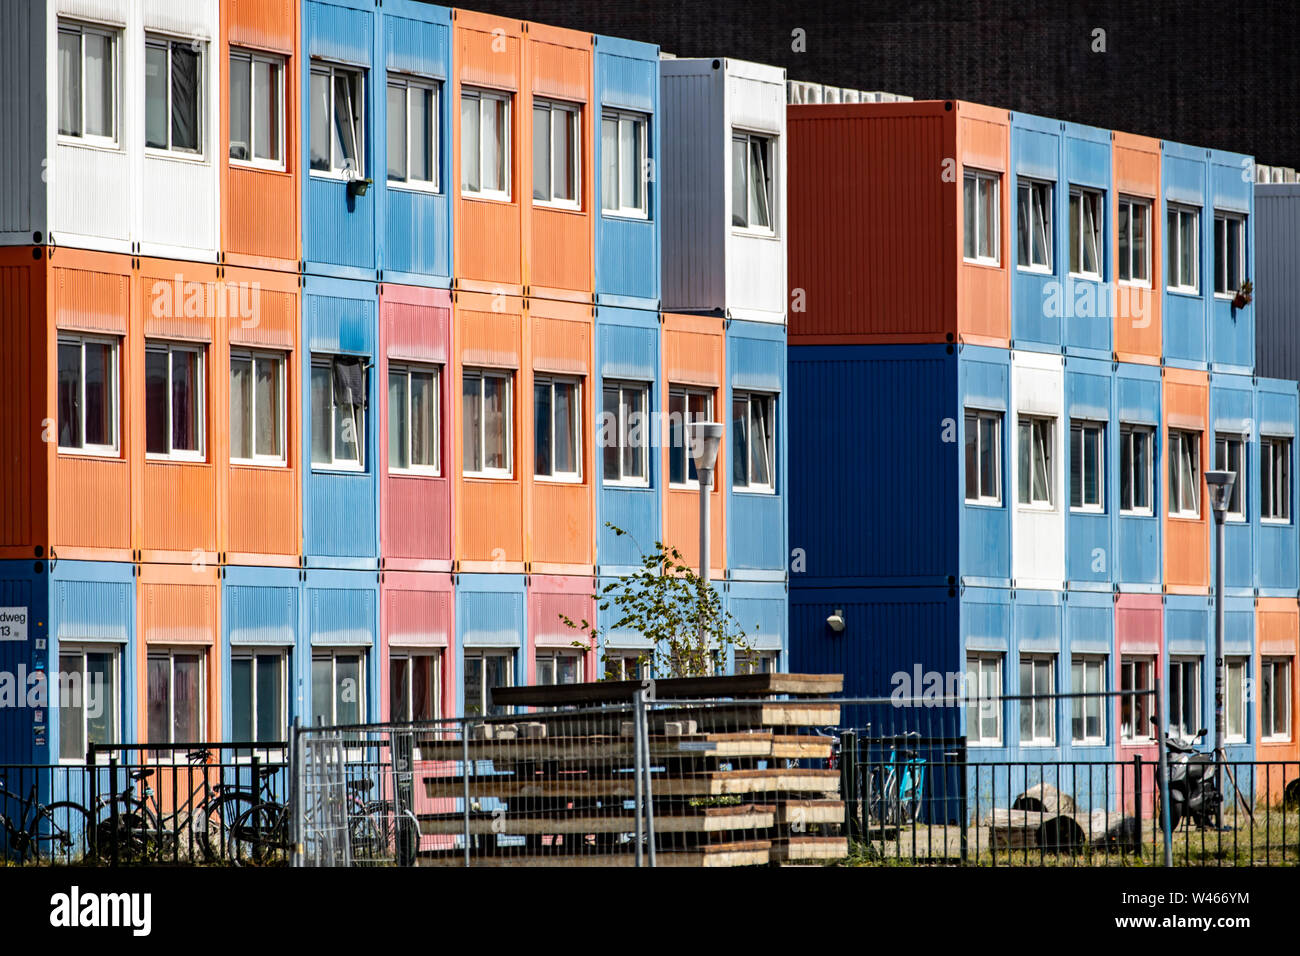 Container, living container on a construction site in Amsterdam, NDSM-Werf, for construction workers, Stock Photo